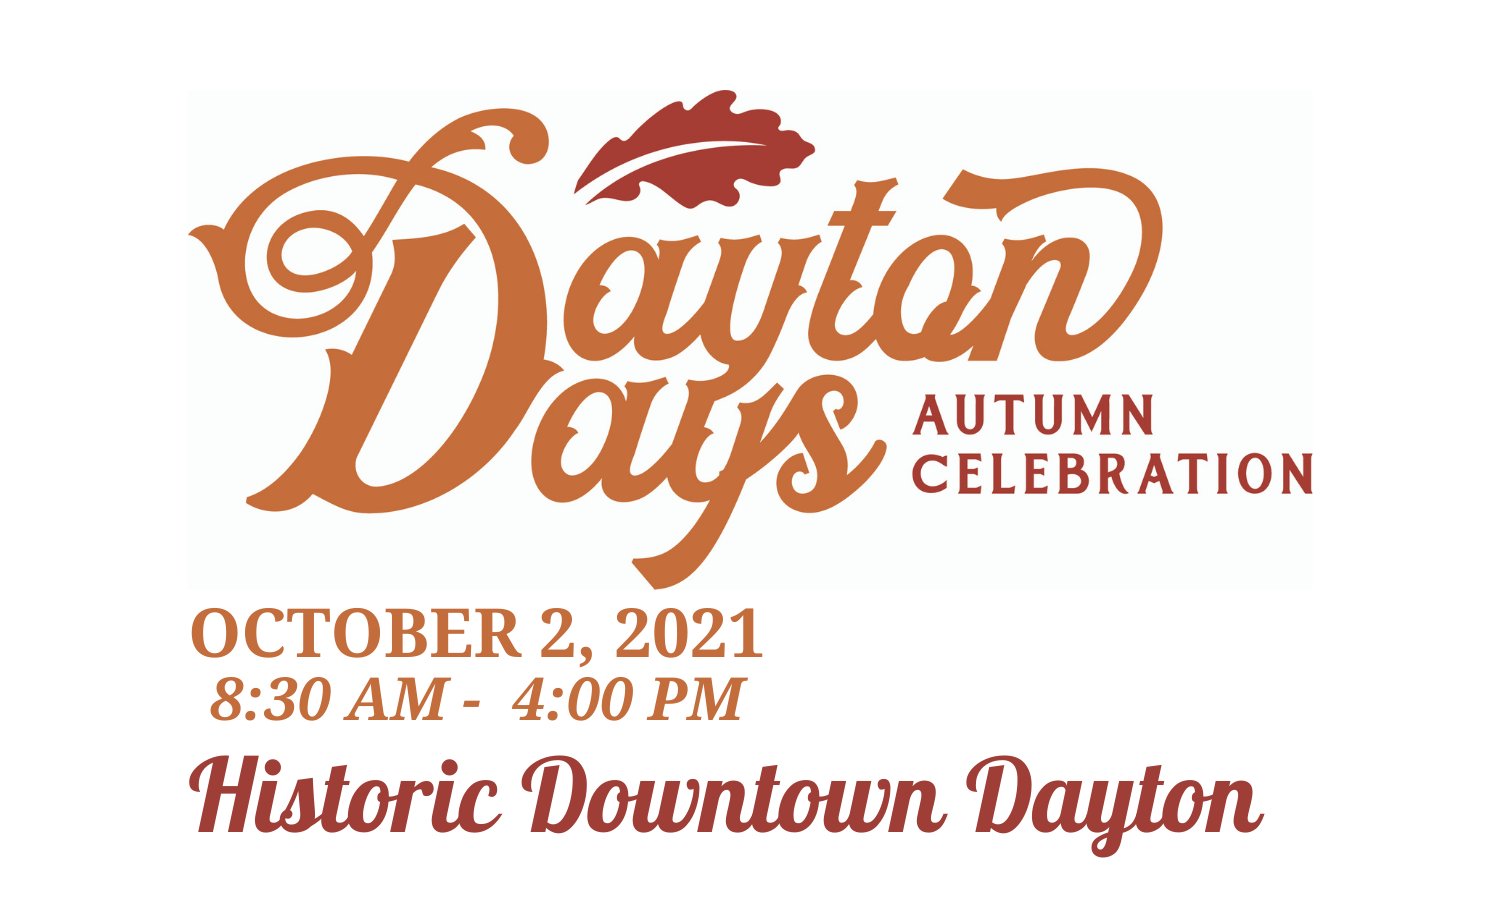 41st Annual Dayton Days / Autumn Celebration @ Town of Dayton | Dayton | Virginia | United States